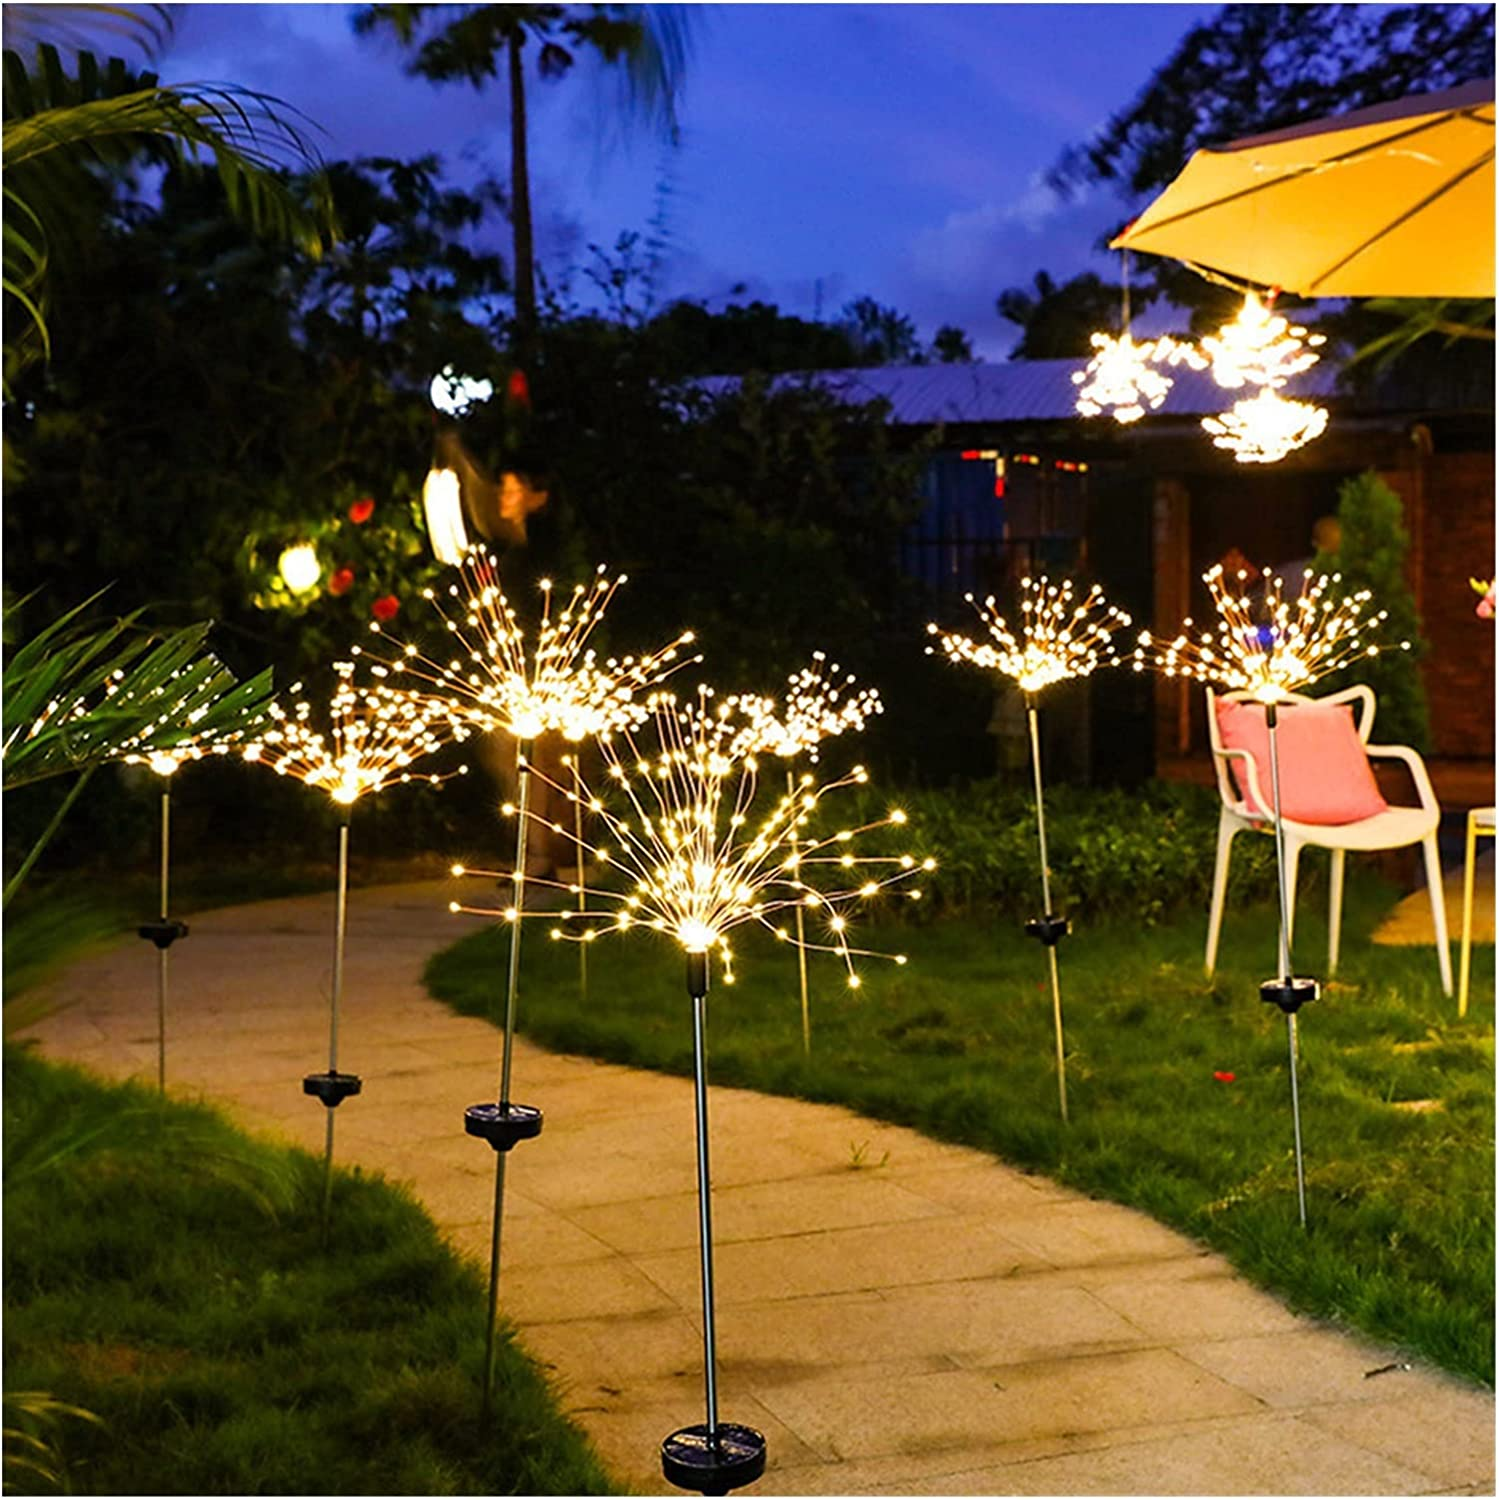 YSJJYQZ Solar Lights Outdoor Grass Limited Special Price D National uniform free shipping Powered Globe